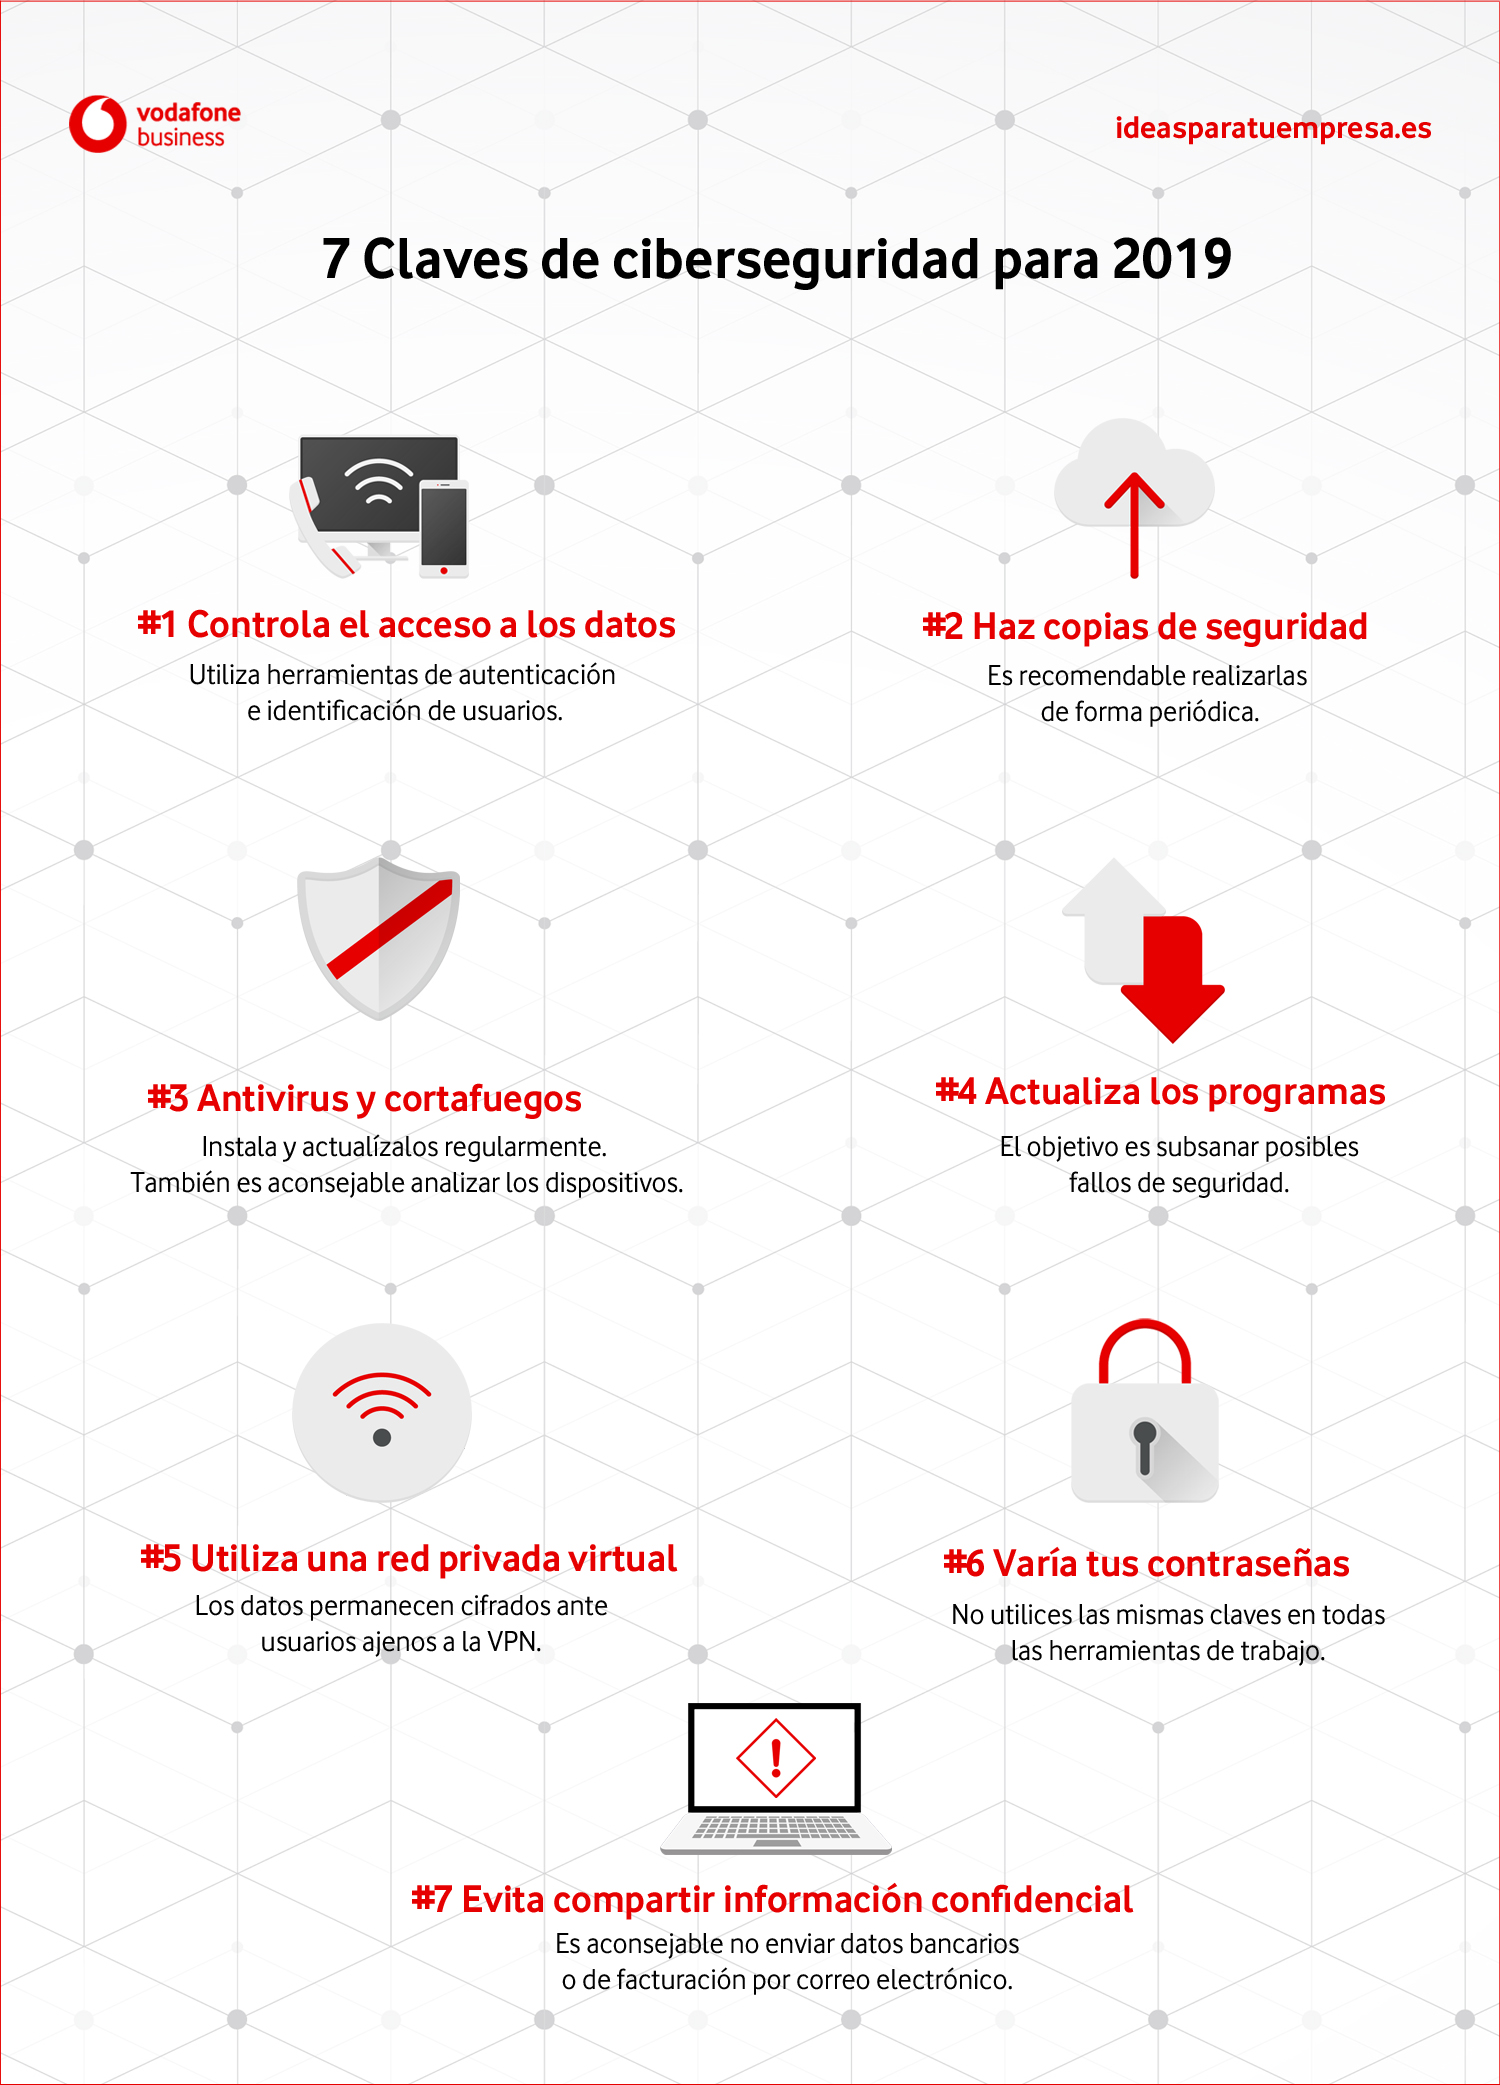 7 Claves ciberseguridad 2019